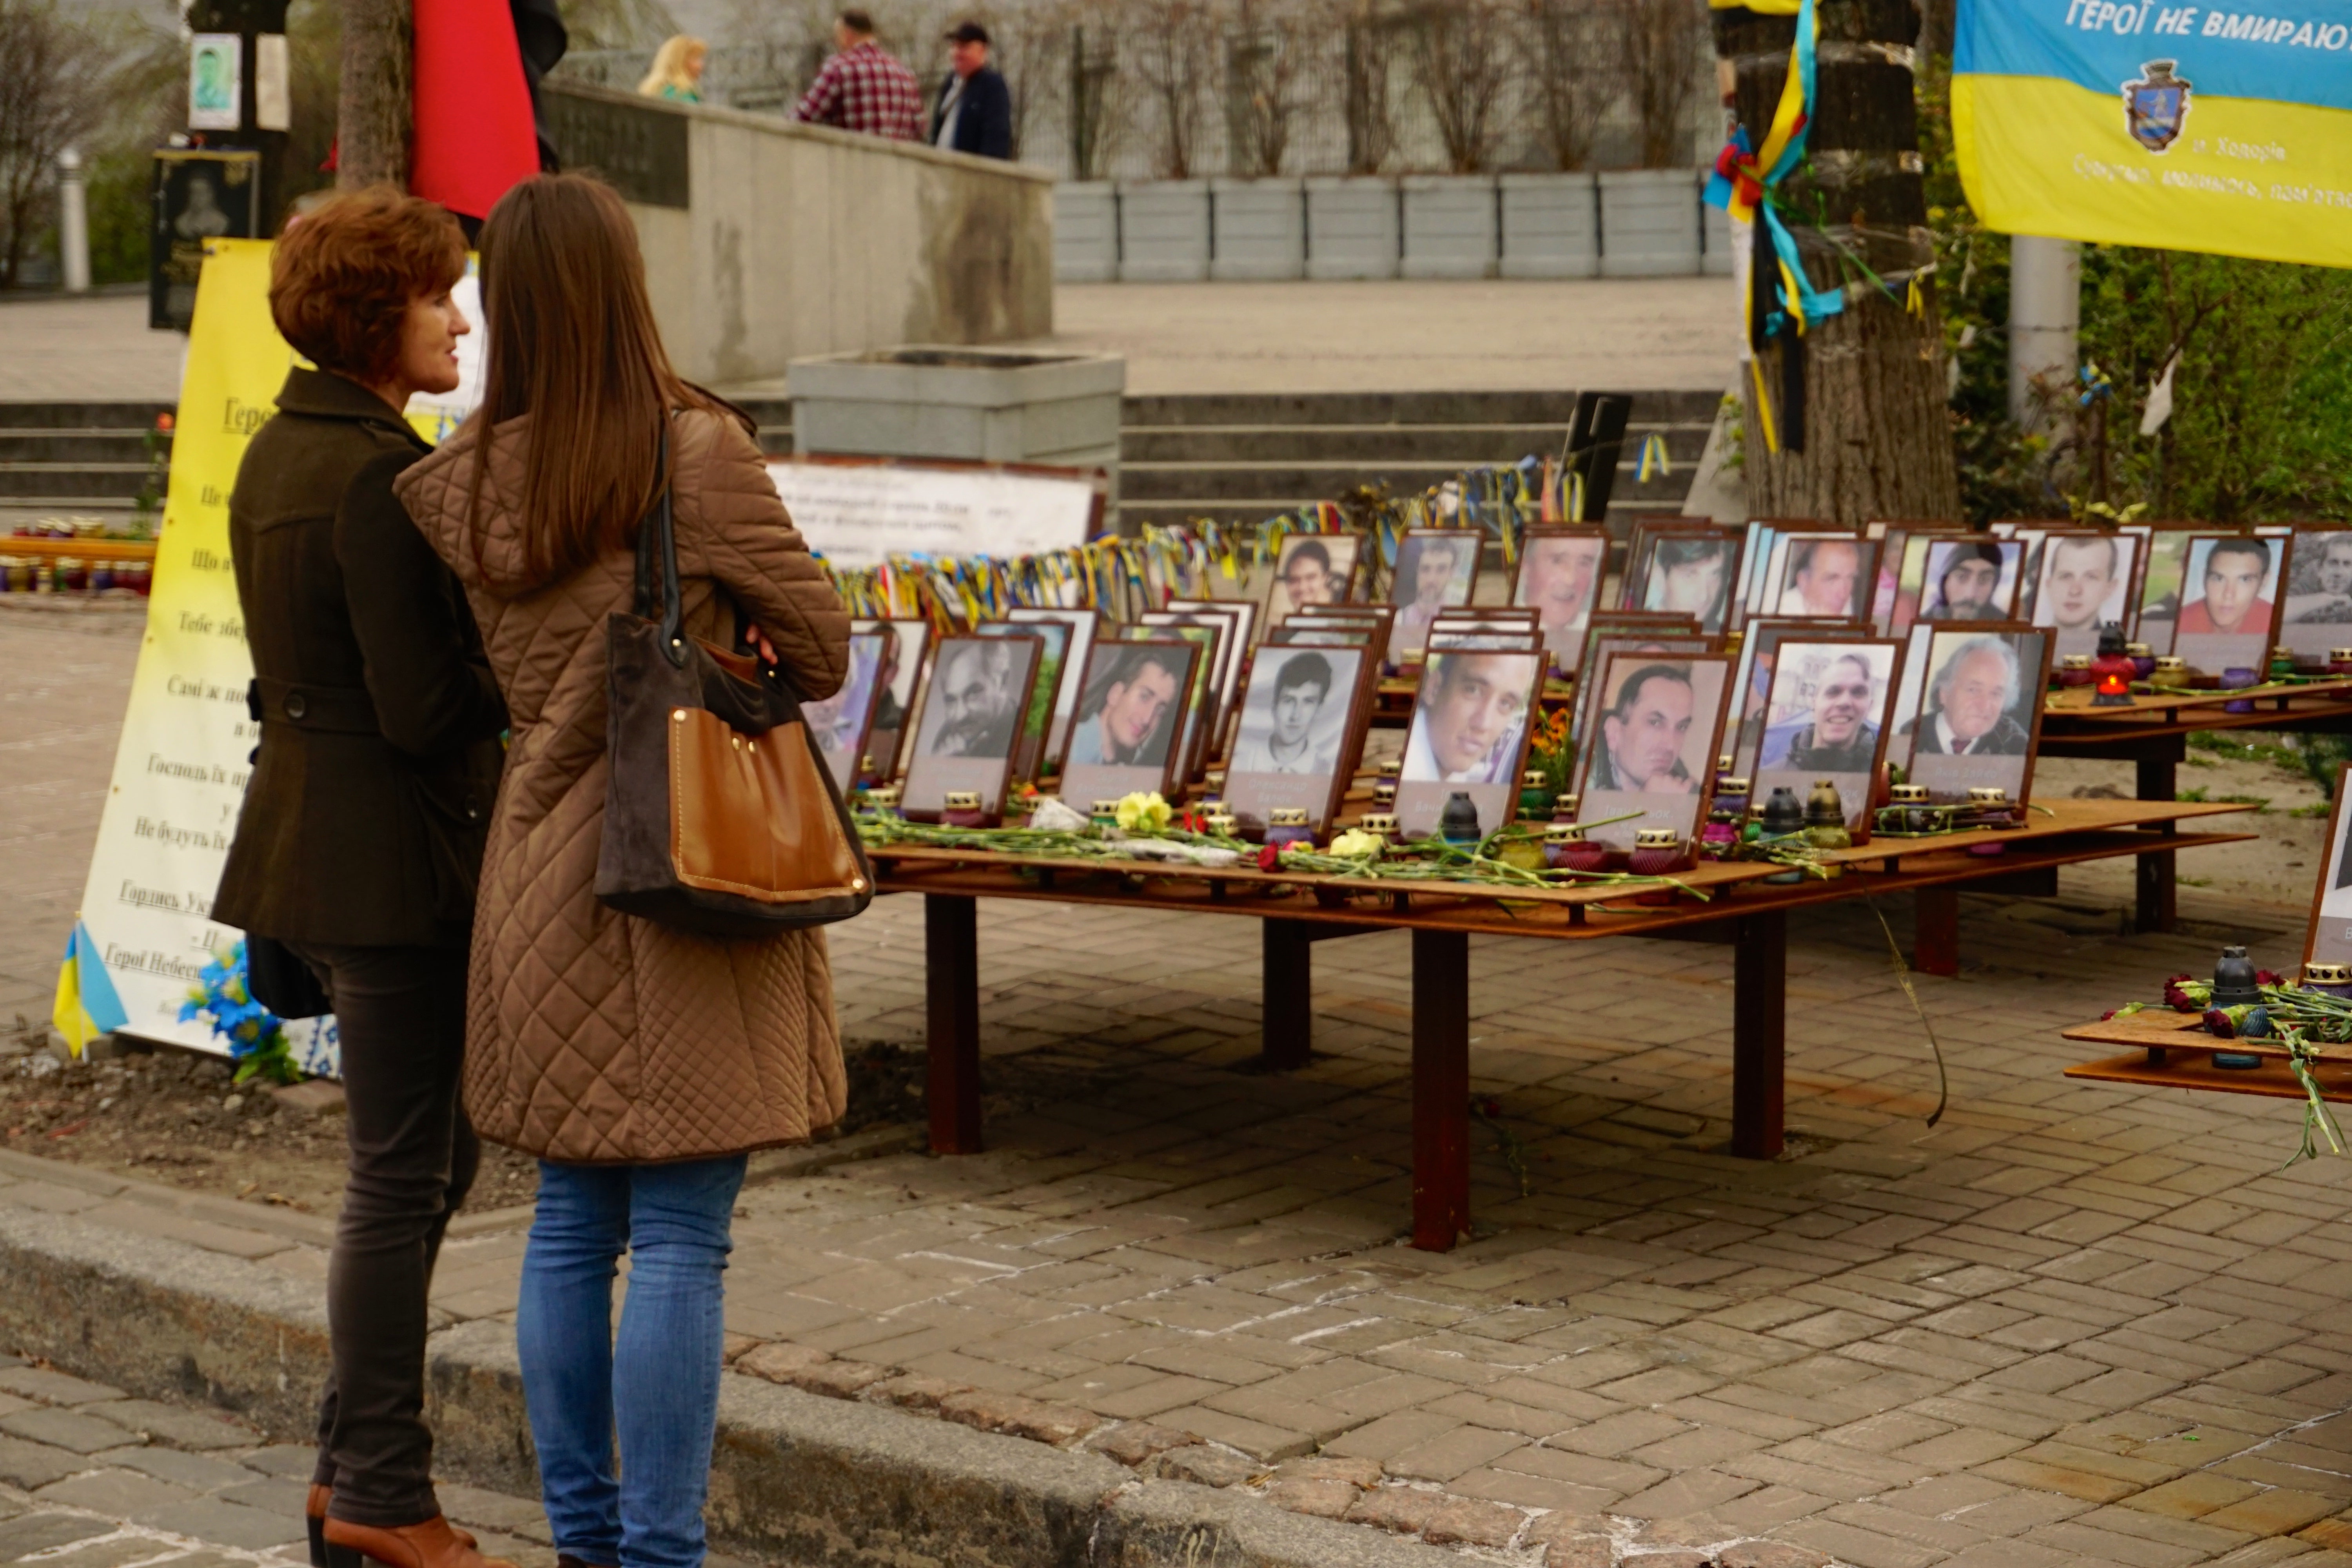 More than 100 protesters died during the February 2014 Ukrainian revolution. (Photos: Nolan Peterson/The Daily Signal)